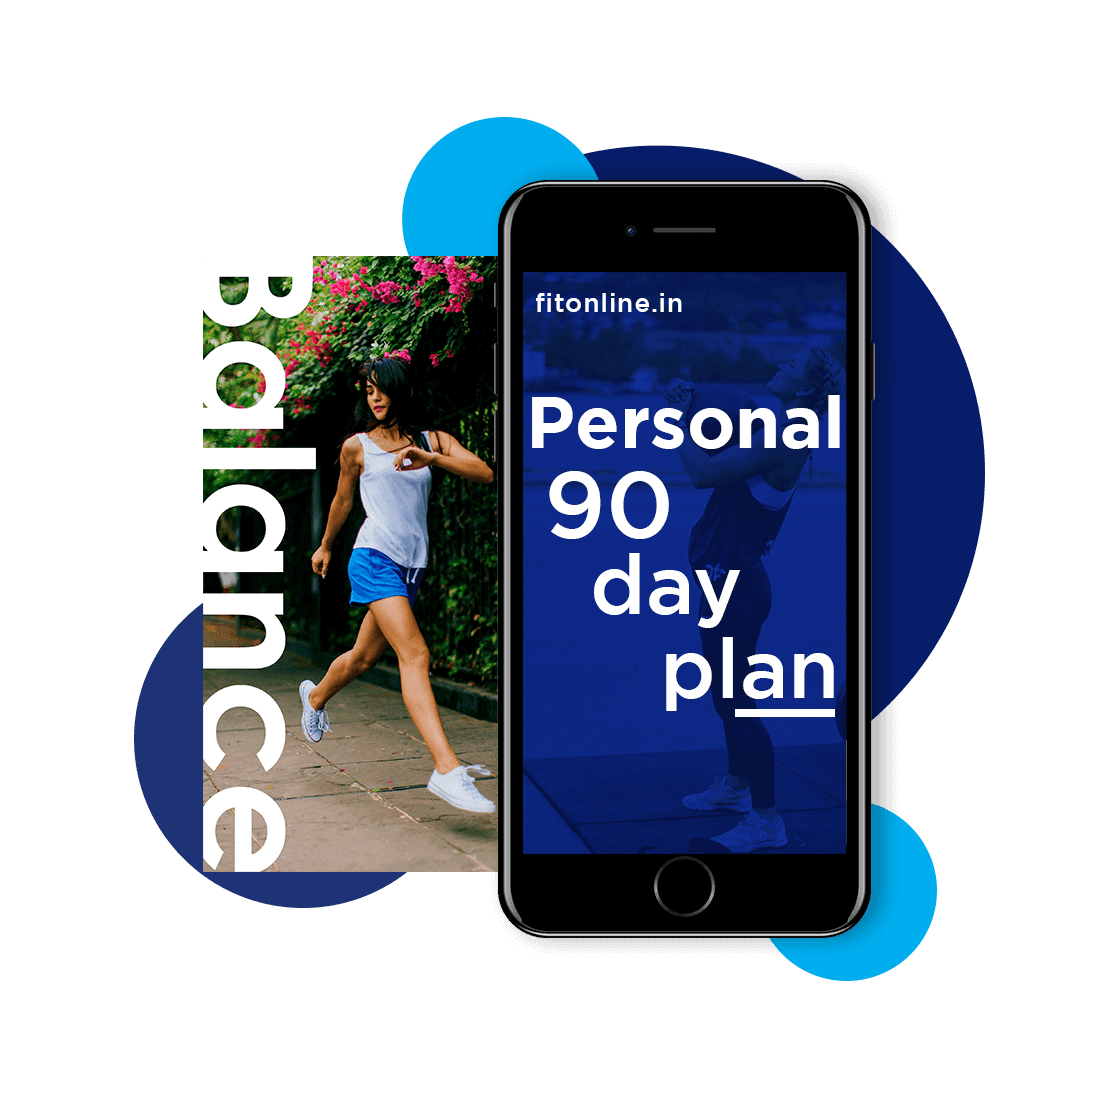 90 day phone fitness plan